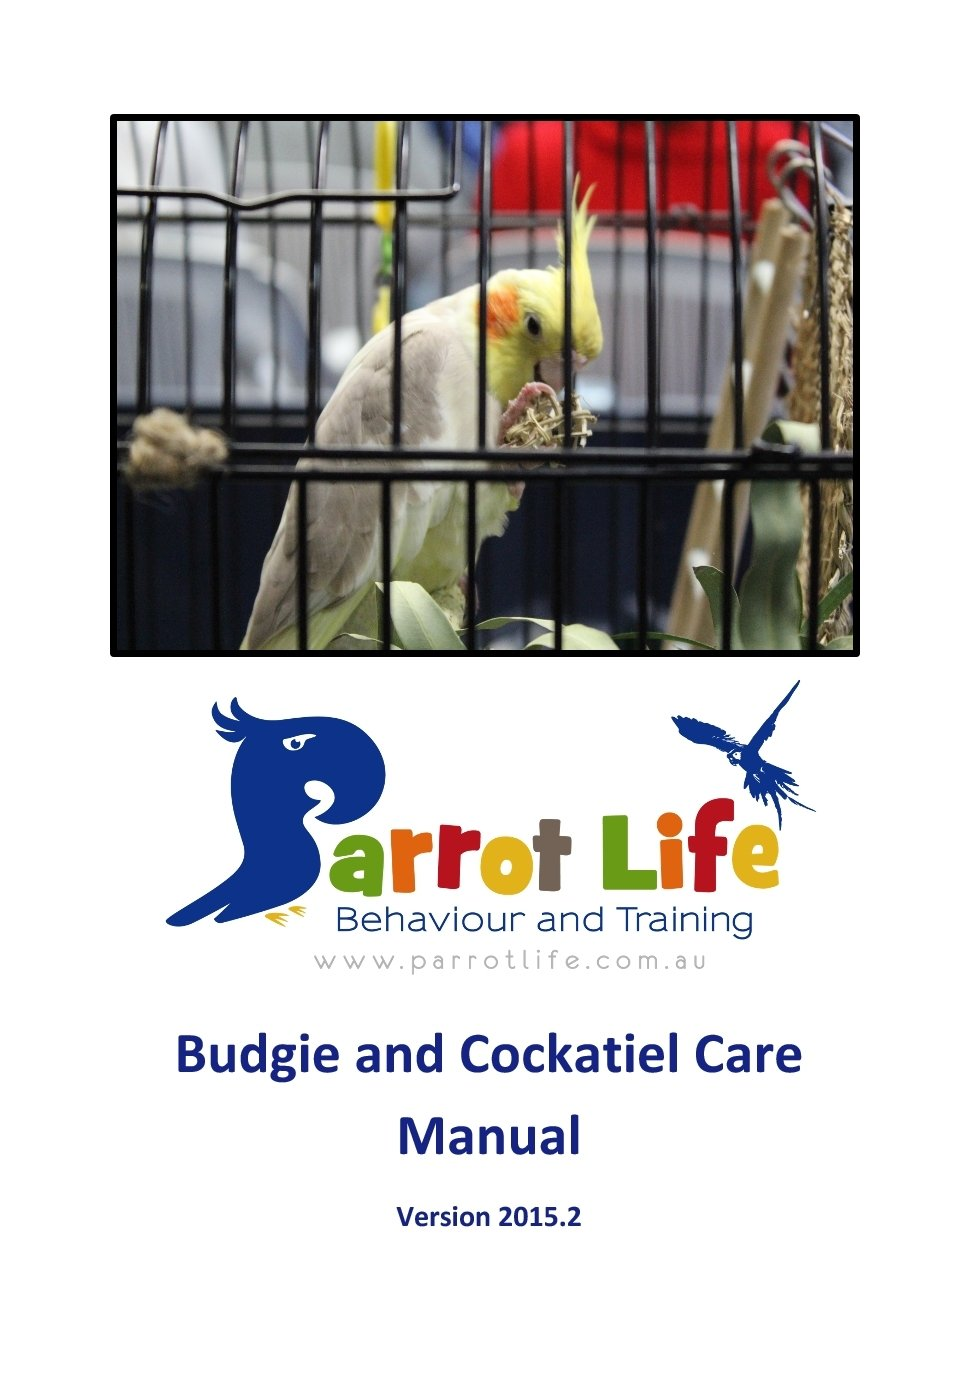 Parrot Life® Budgie and Cockatiel Care Manual